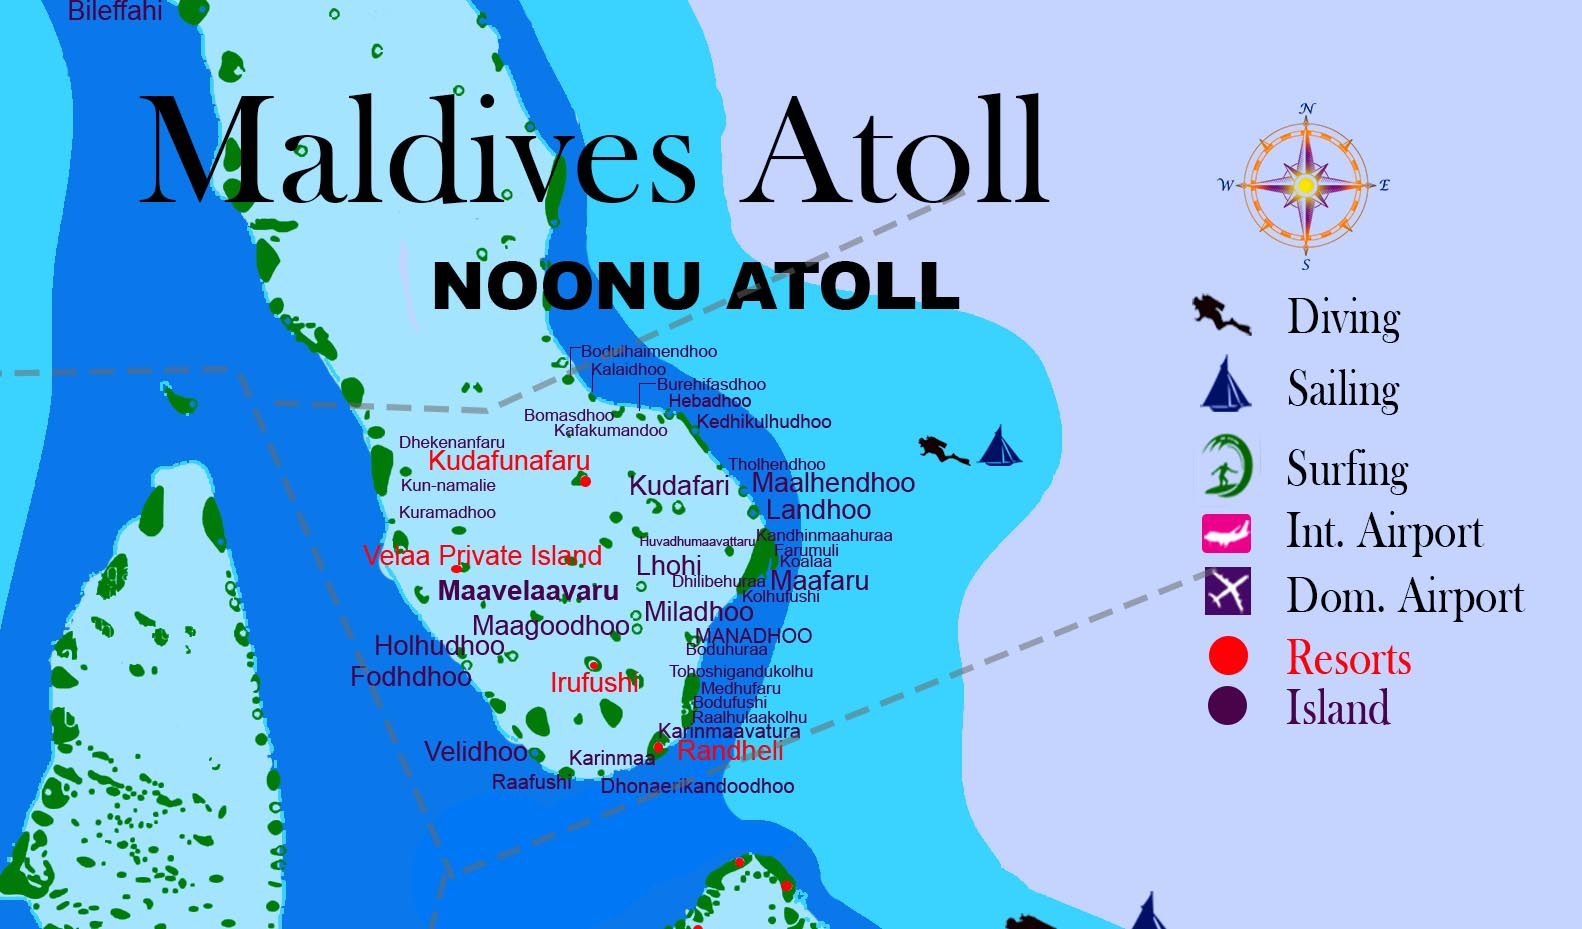 Maldives Atoll NOONU ATOLL Island name resorts and hotel Travel